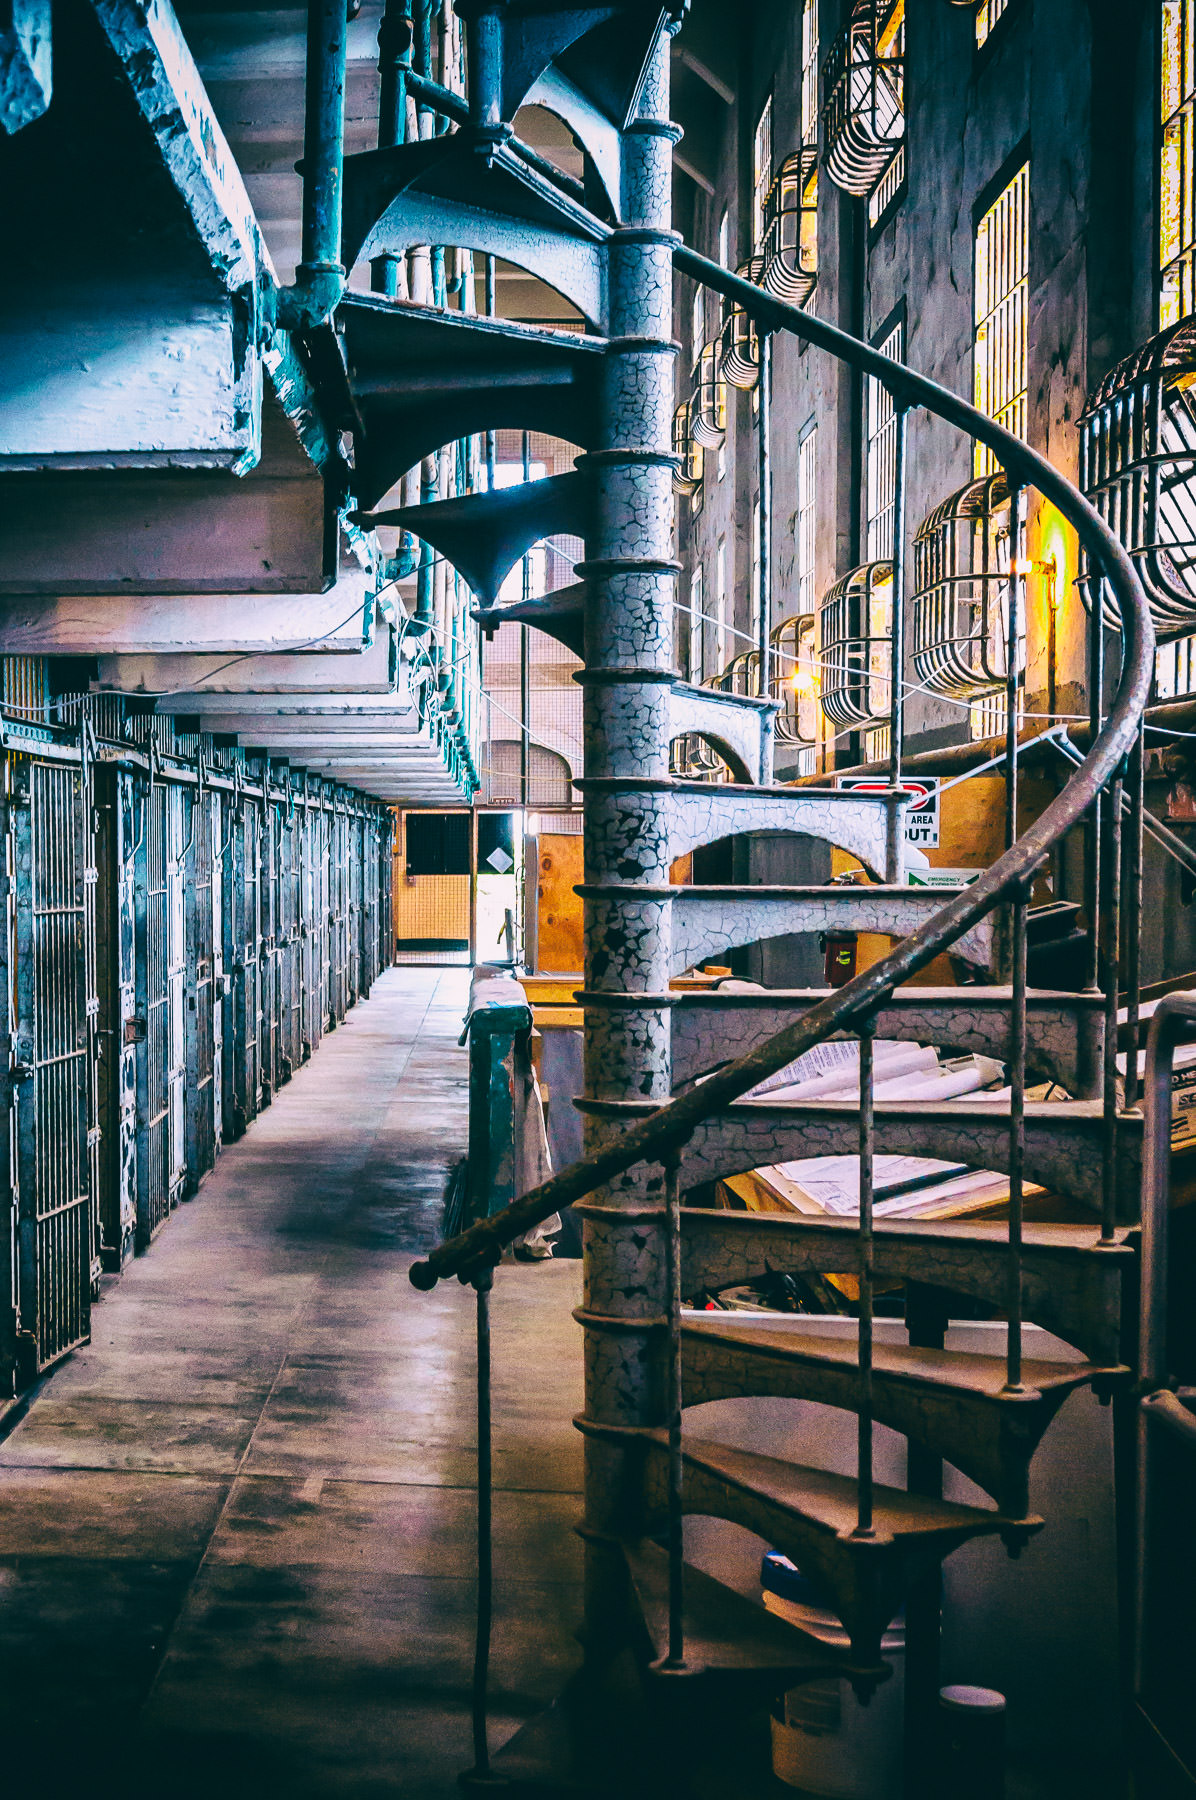 A spiral staircase in the cell block at Alcatraz Federal Penitentiary, San Francisco.